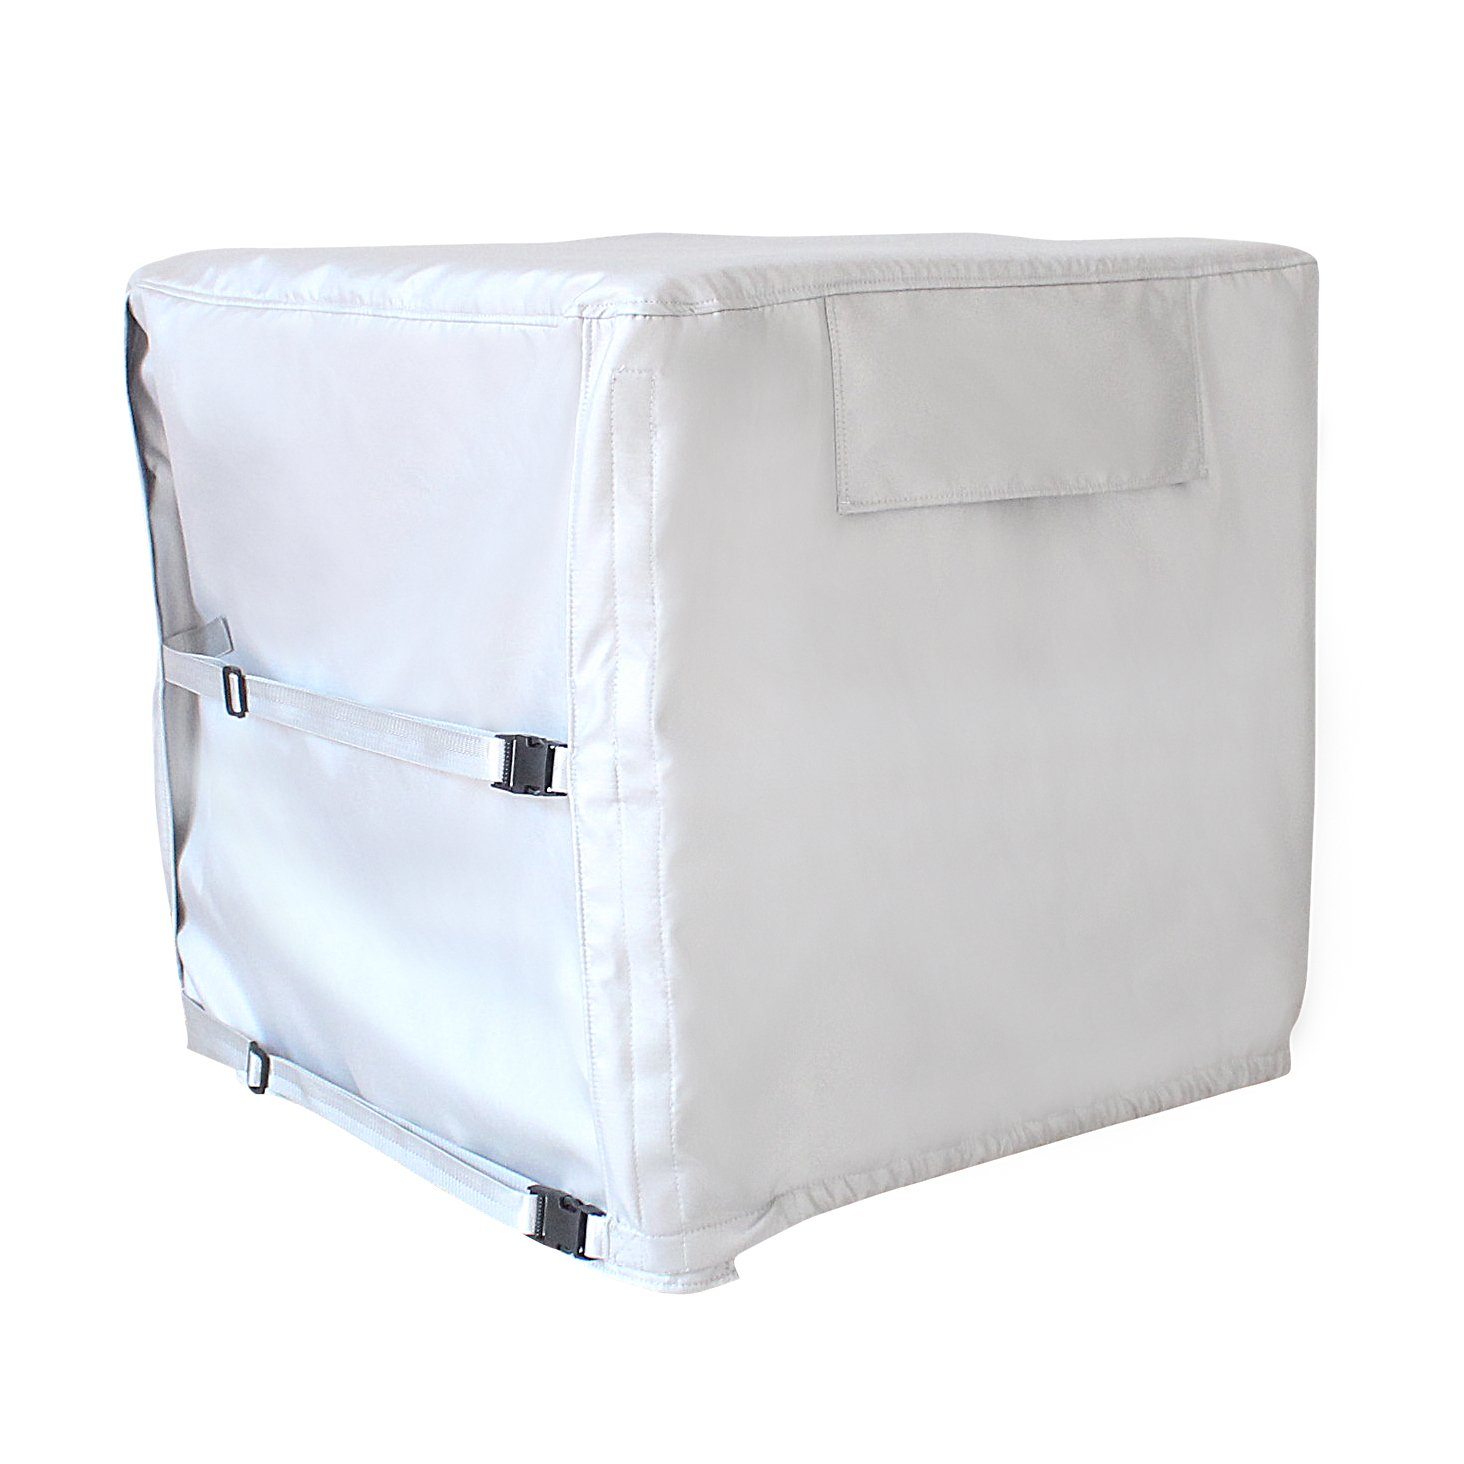 [Mr.You] Outdoor Air Conditioner Cover Waterproof Cleaning Cover Anti-Dust Home Cleaning Tool (Standard fabric)